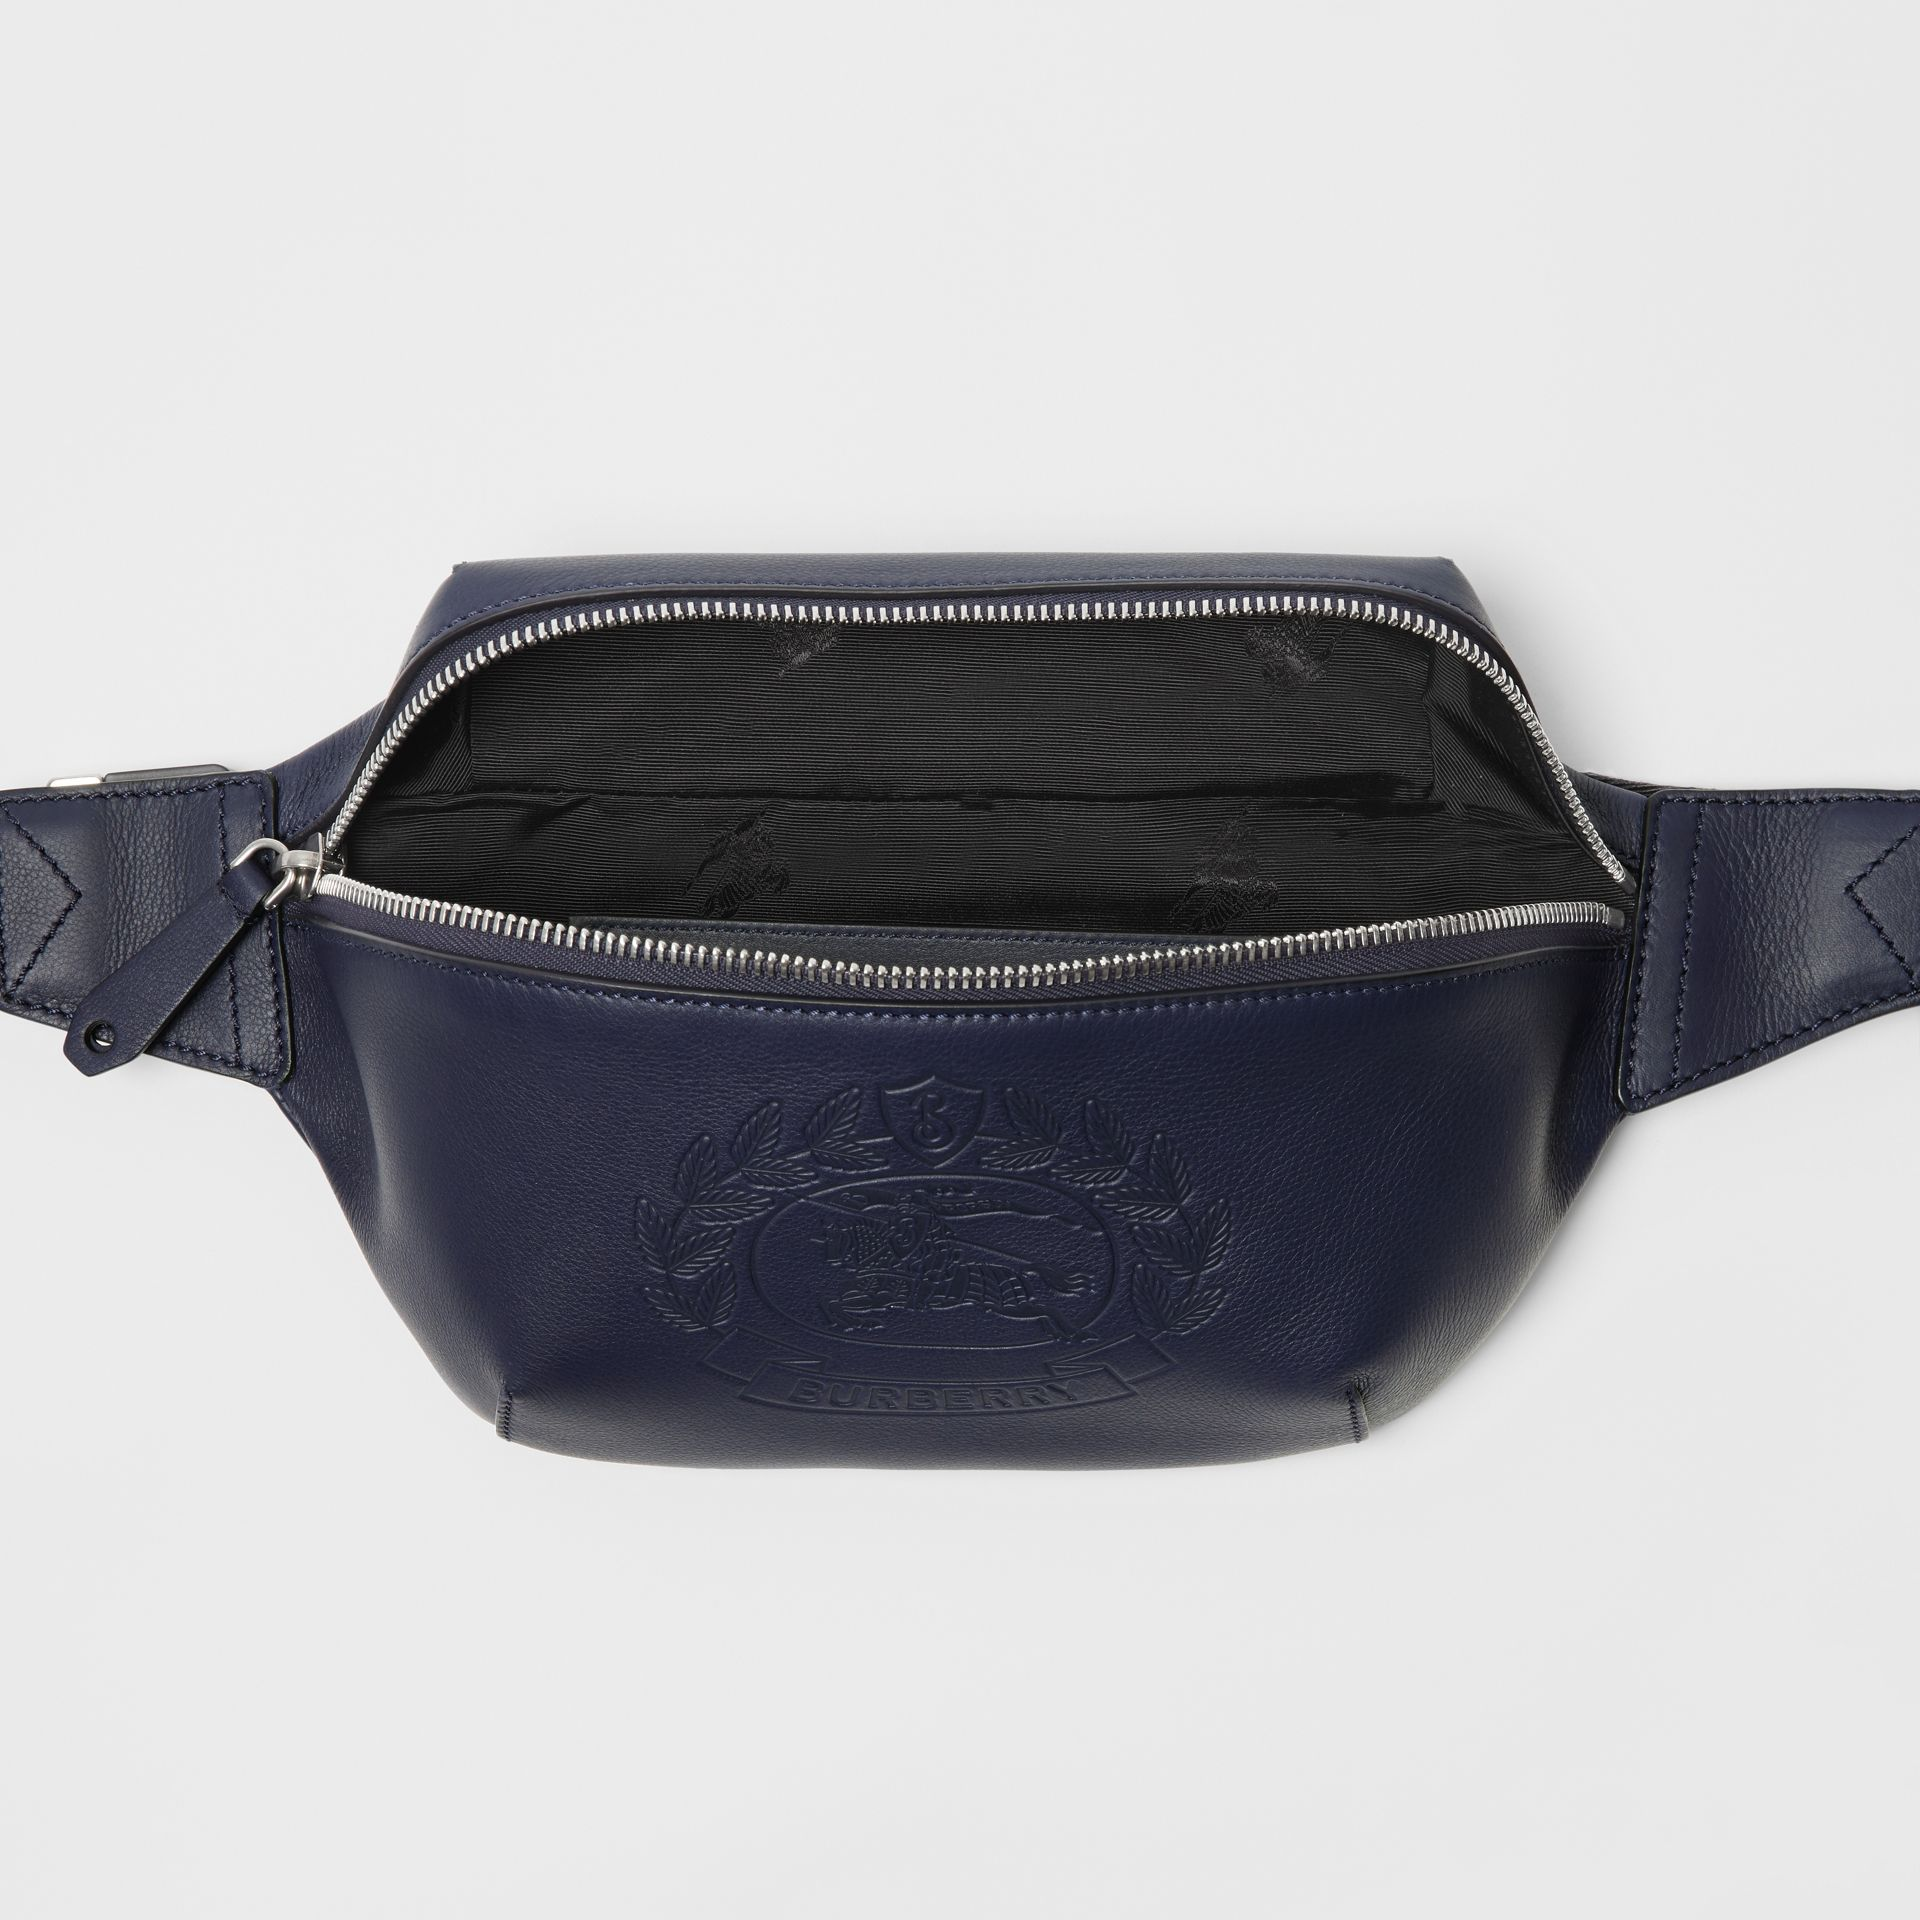 Medium Embossed Crest Leather Bum Bag in Regency Blue | Burberry Australia - gallery image 5